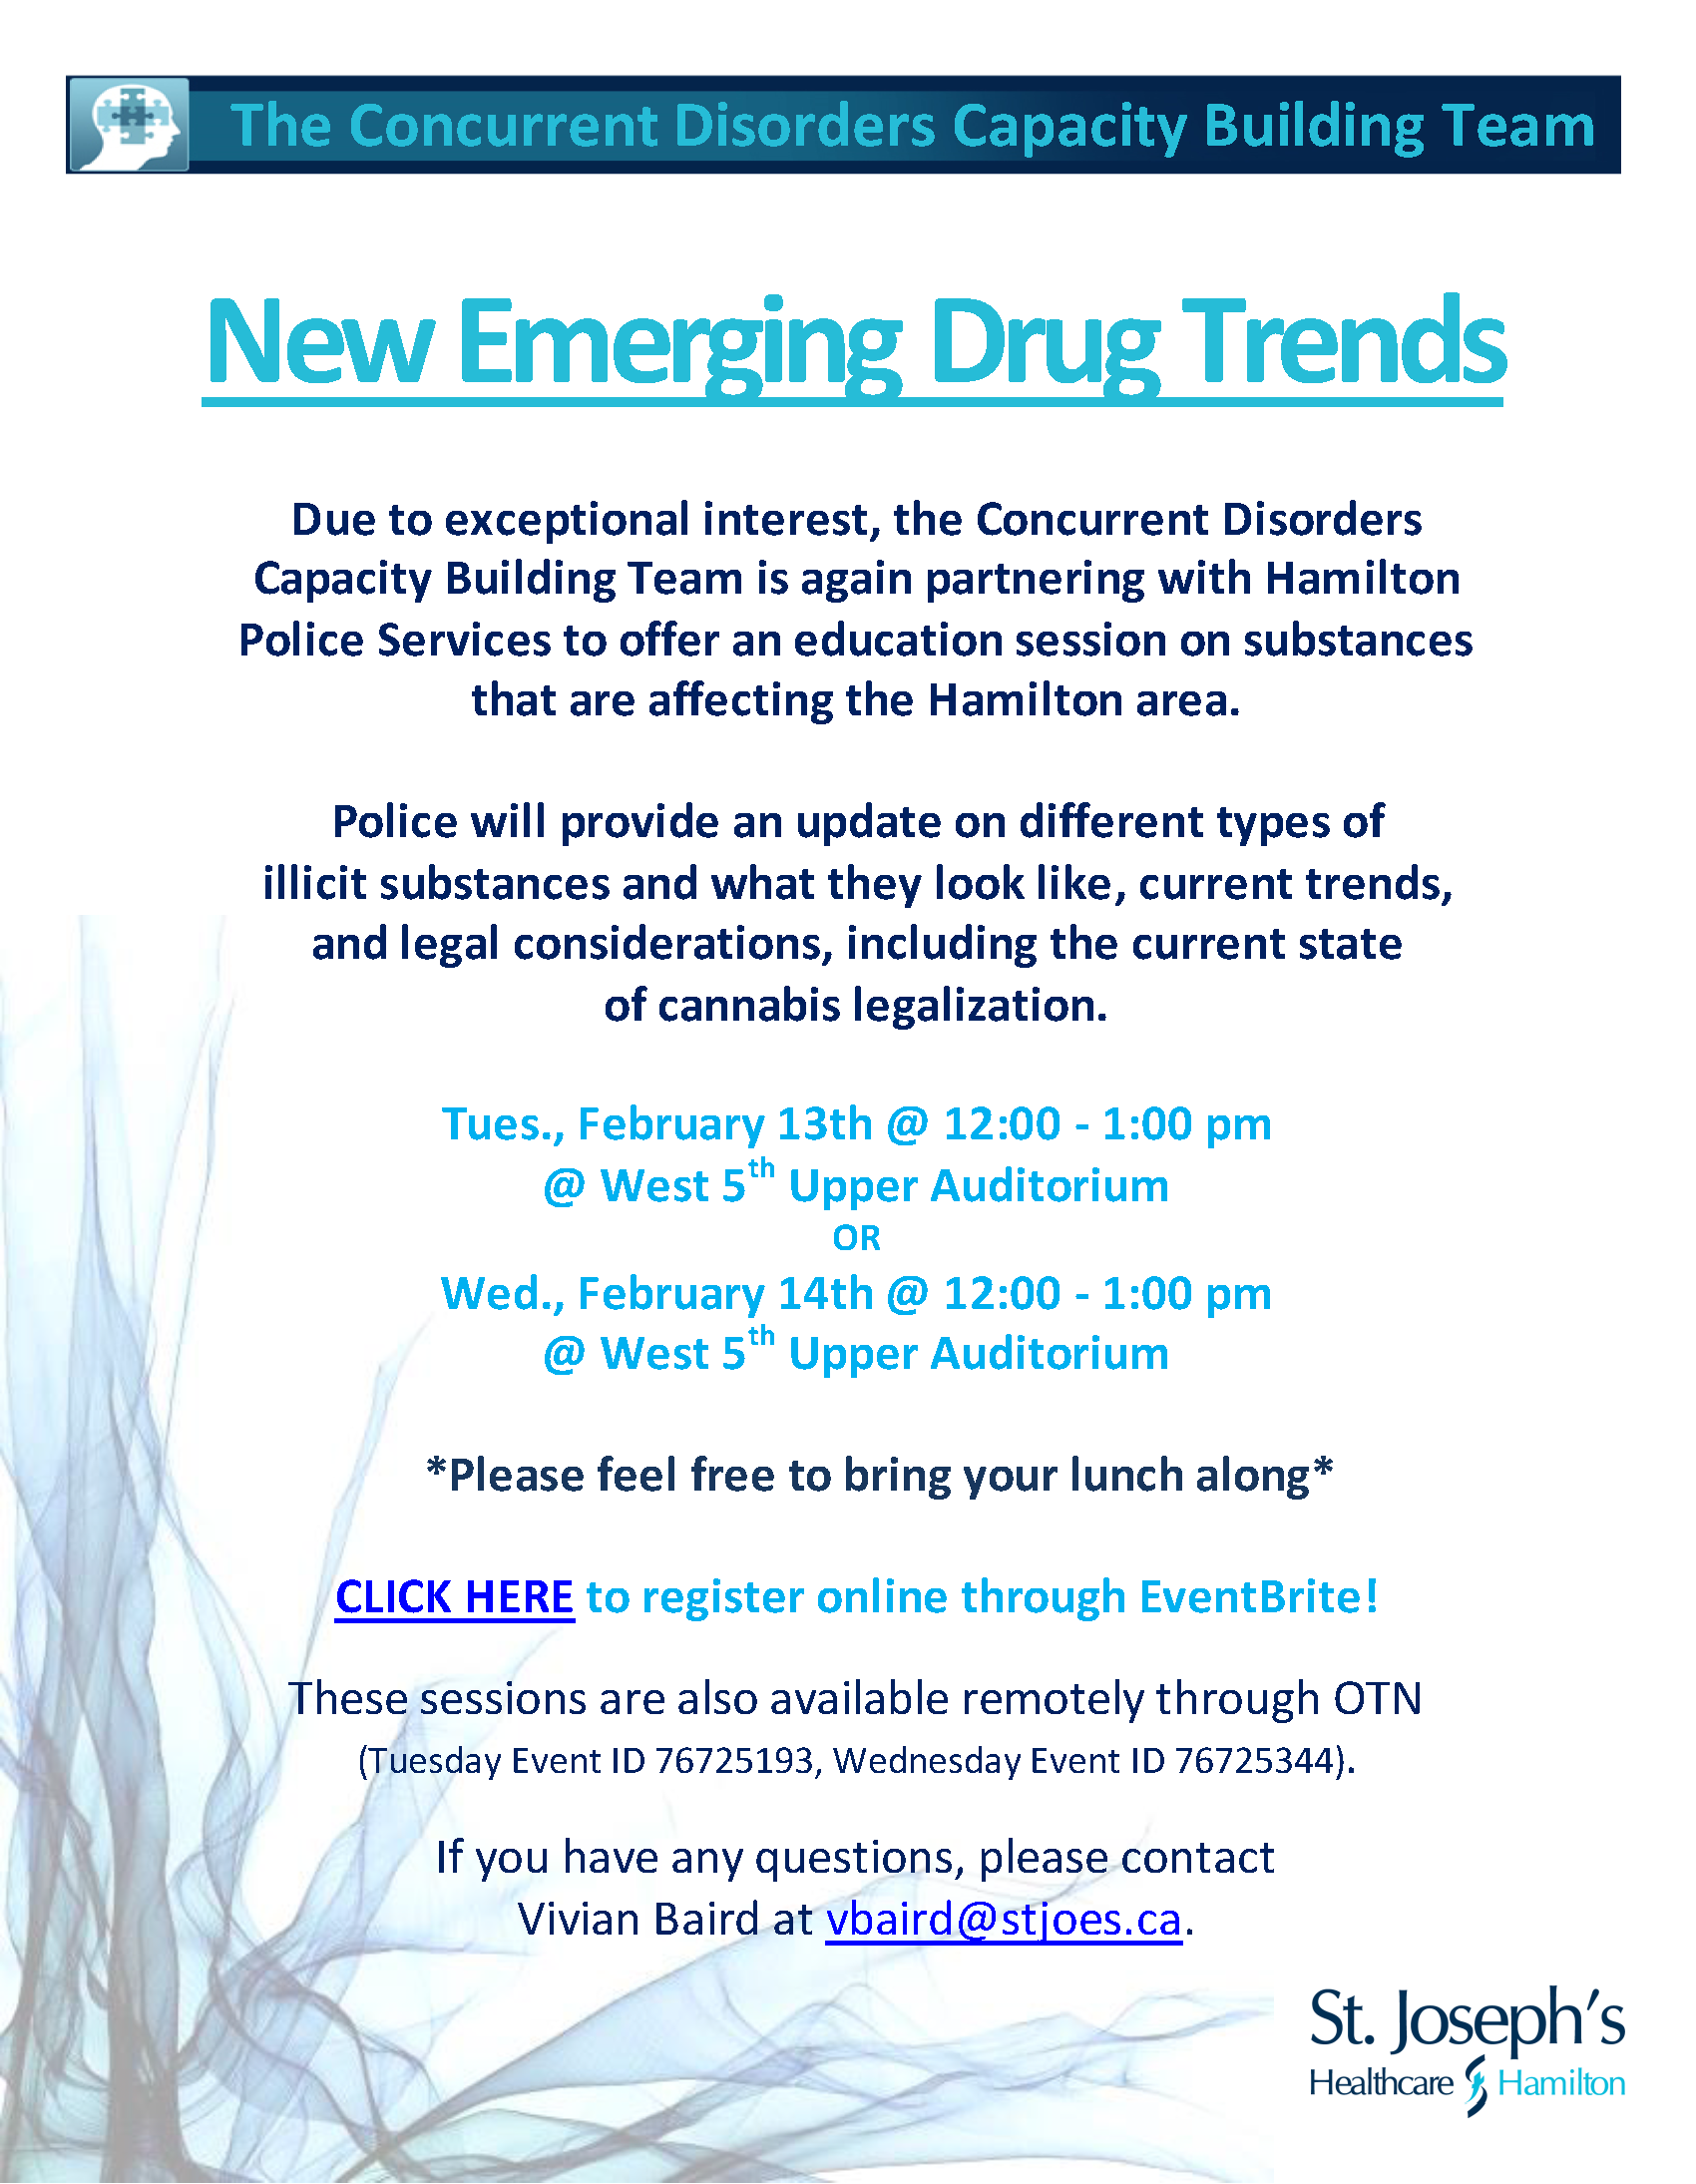 Emerging Drug Trends conference Feb. 13 noon